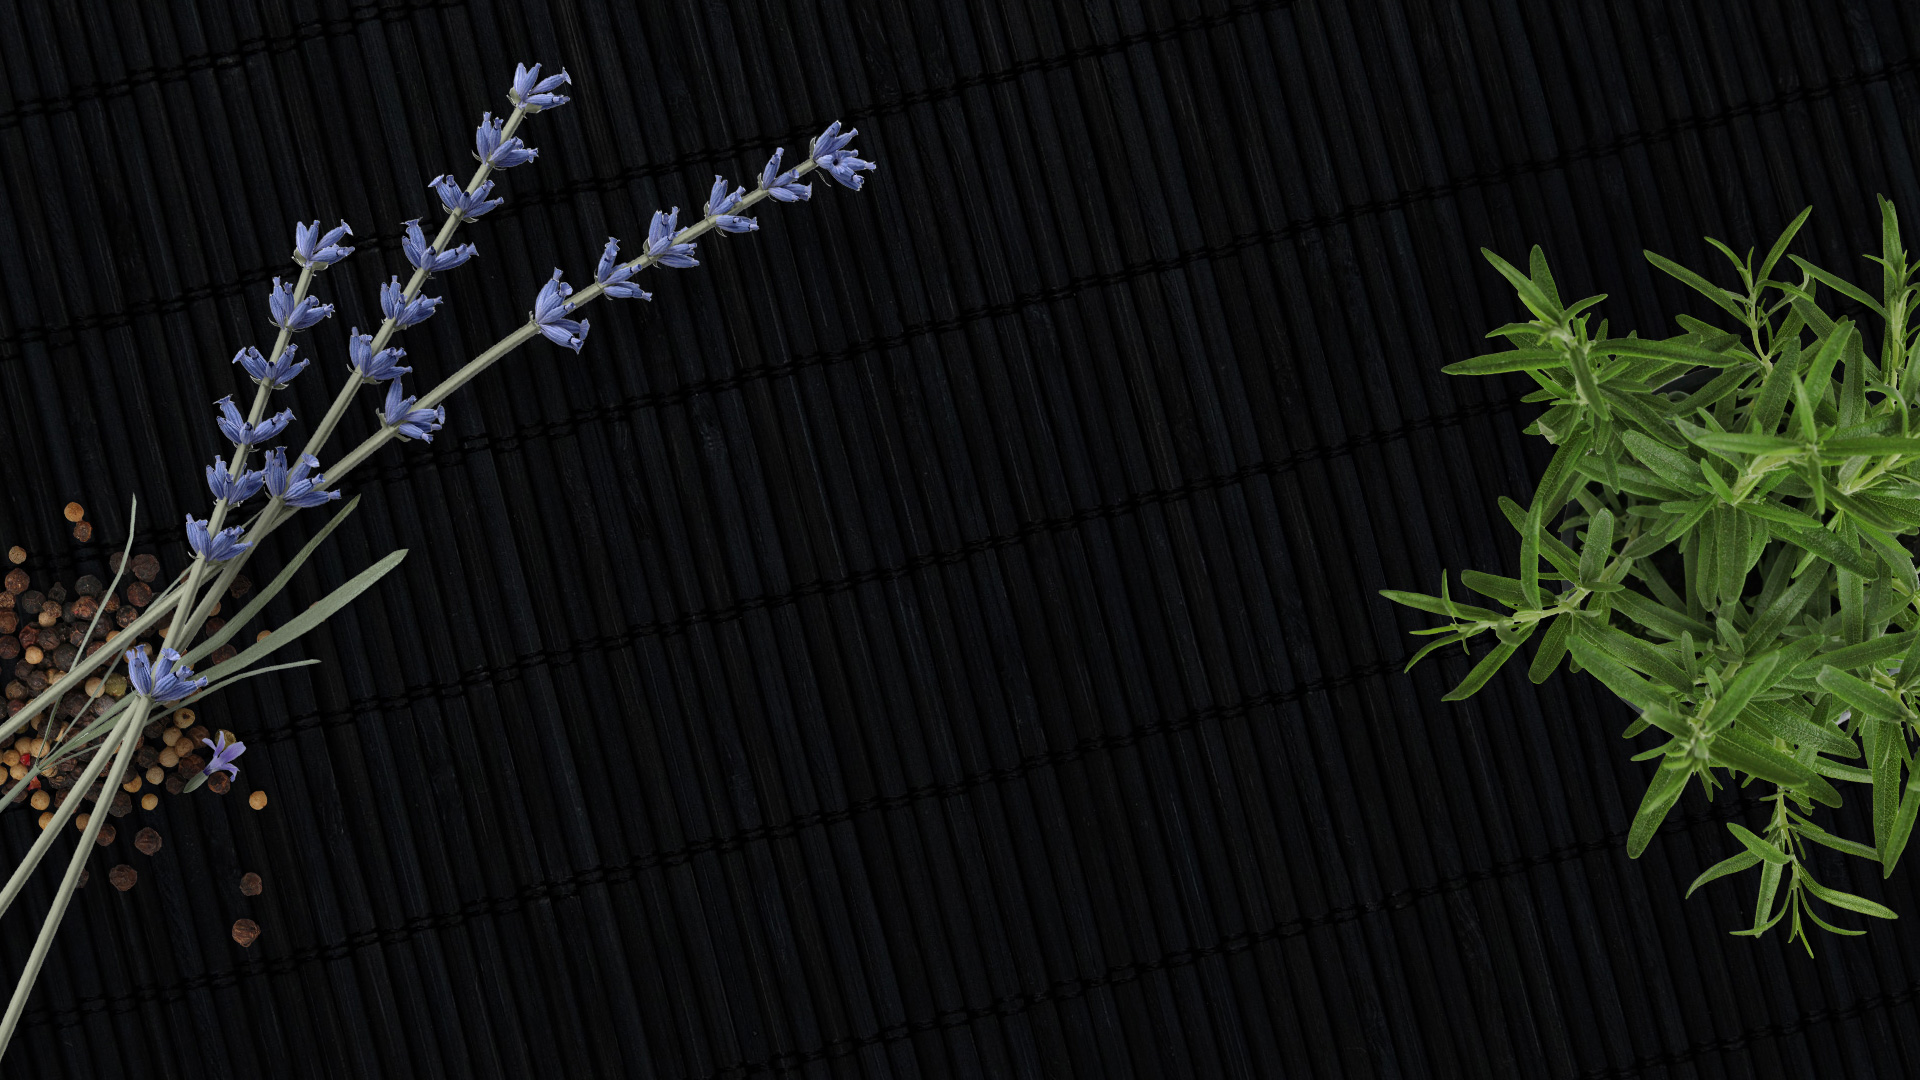 Black bamboo background with plants